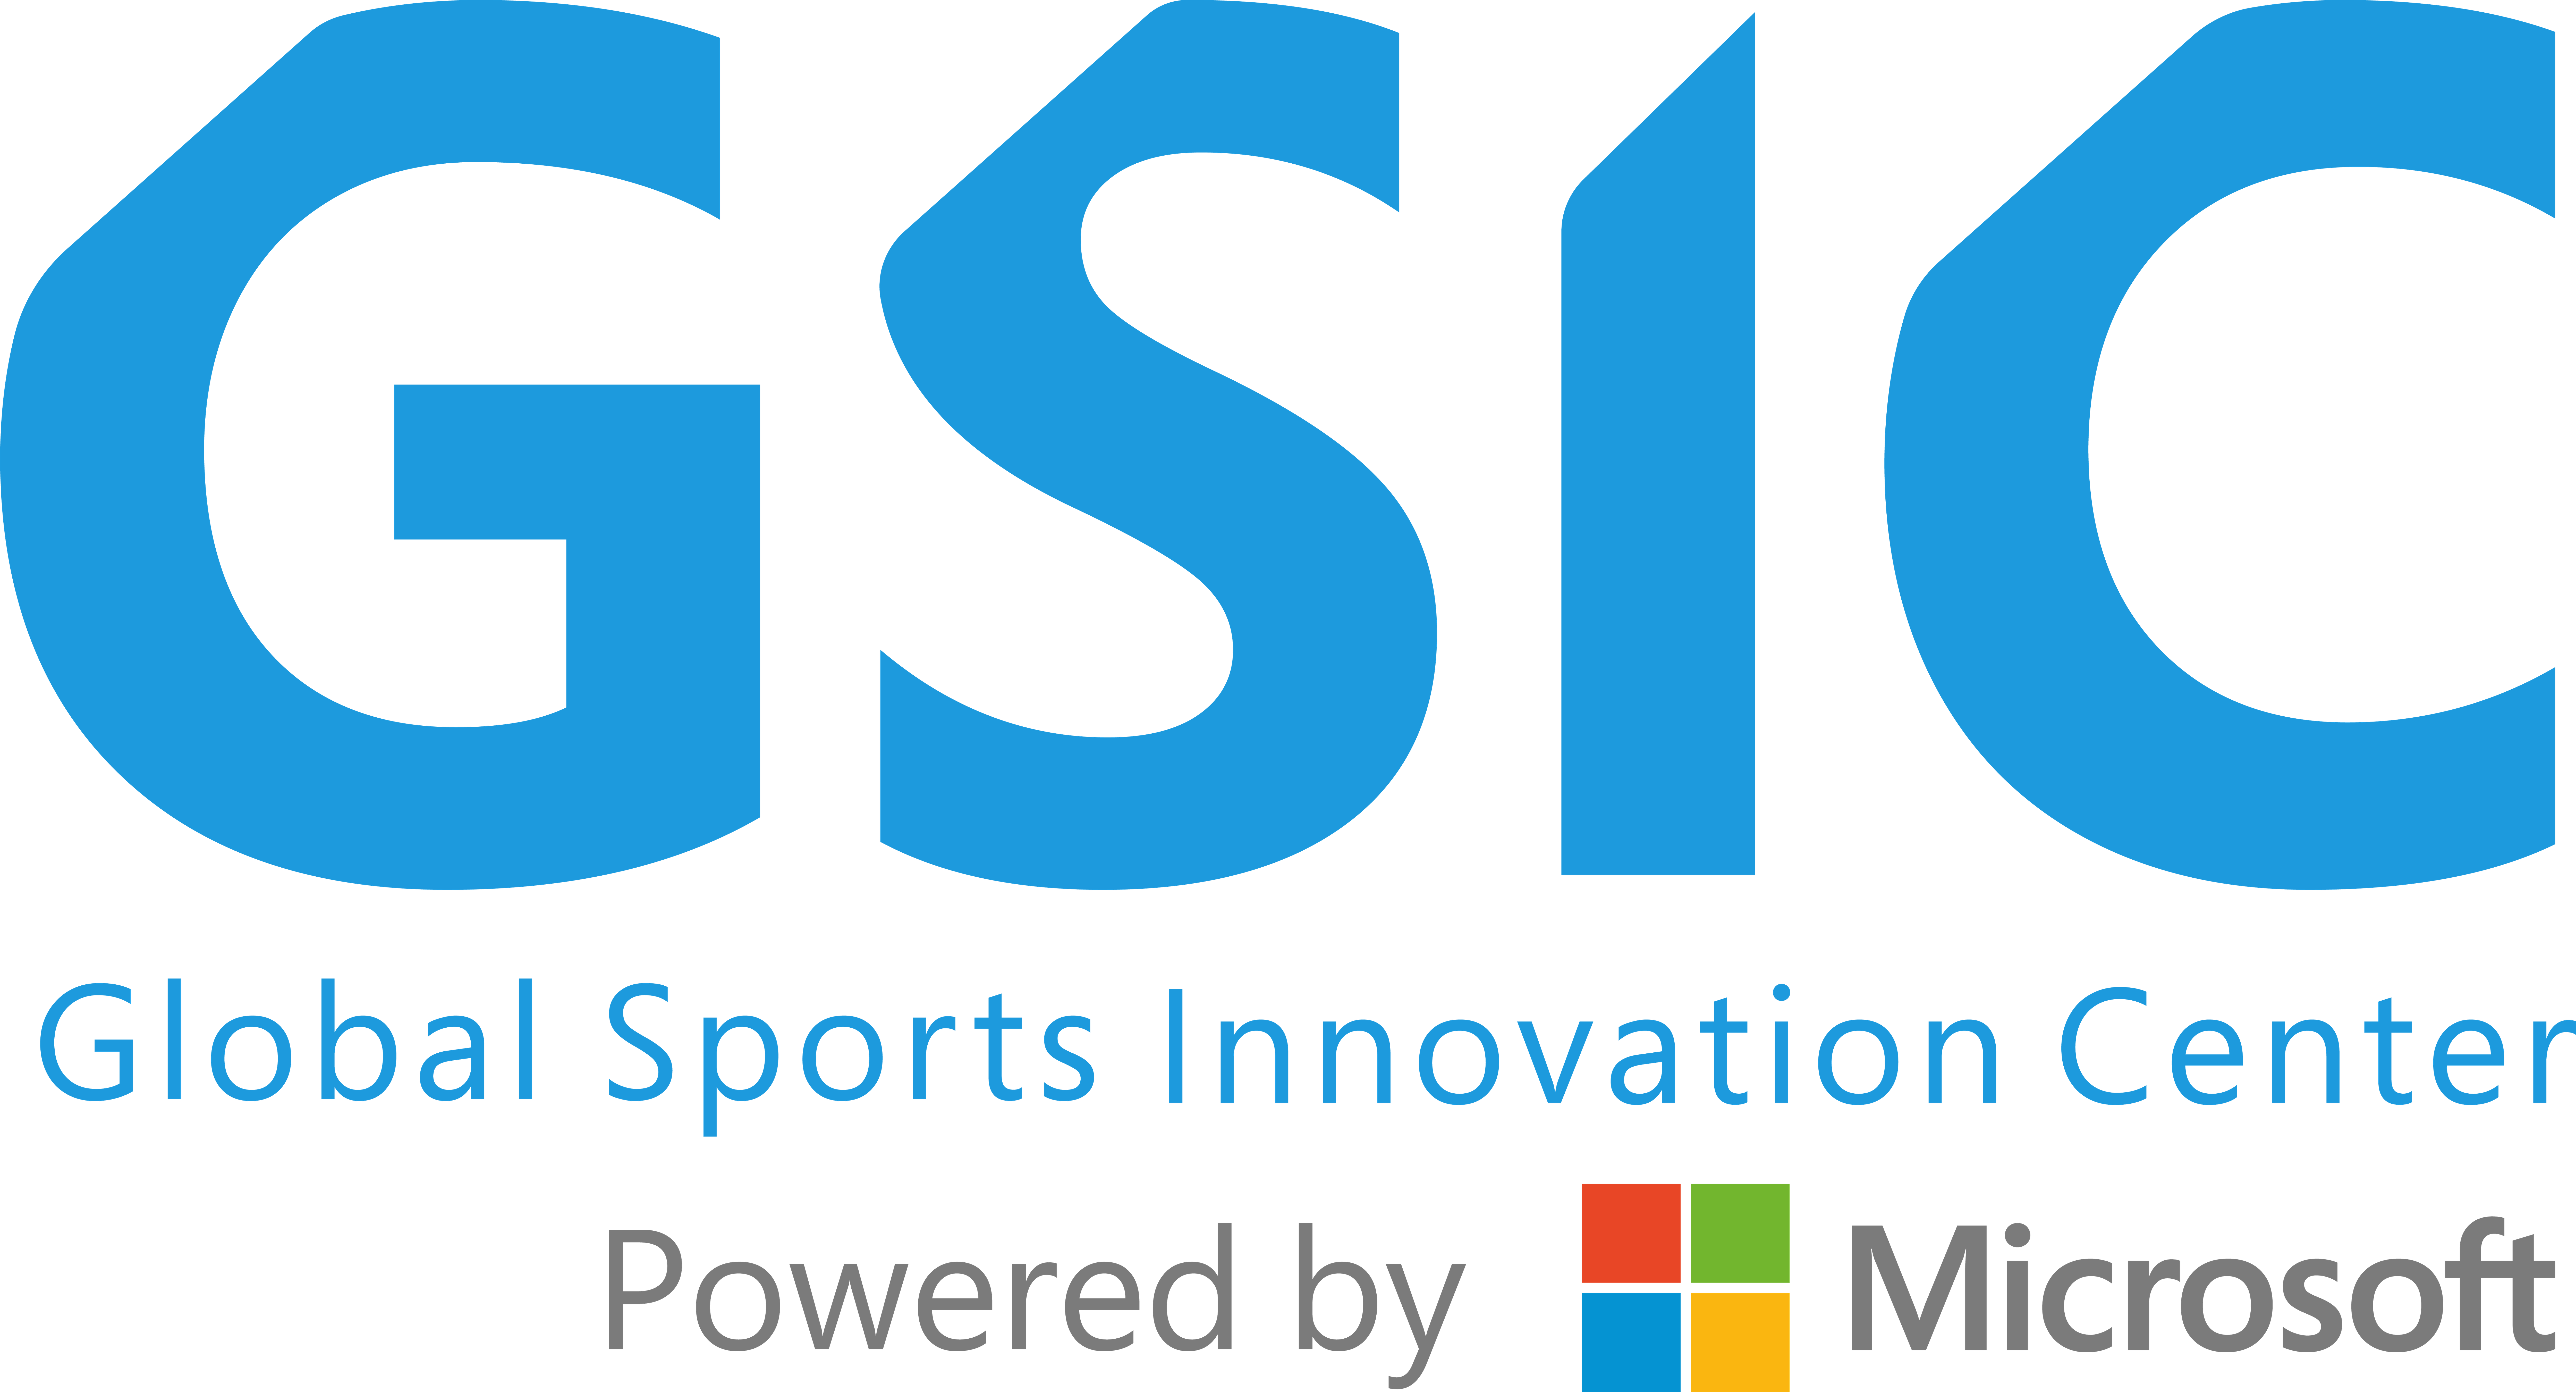 Global Sports Innovation Center (GSIC) powered by Microsoft